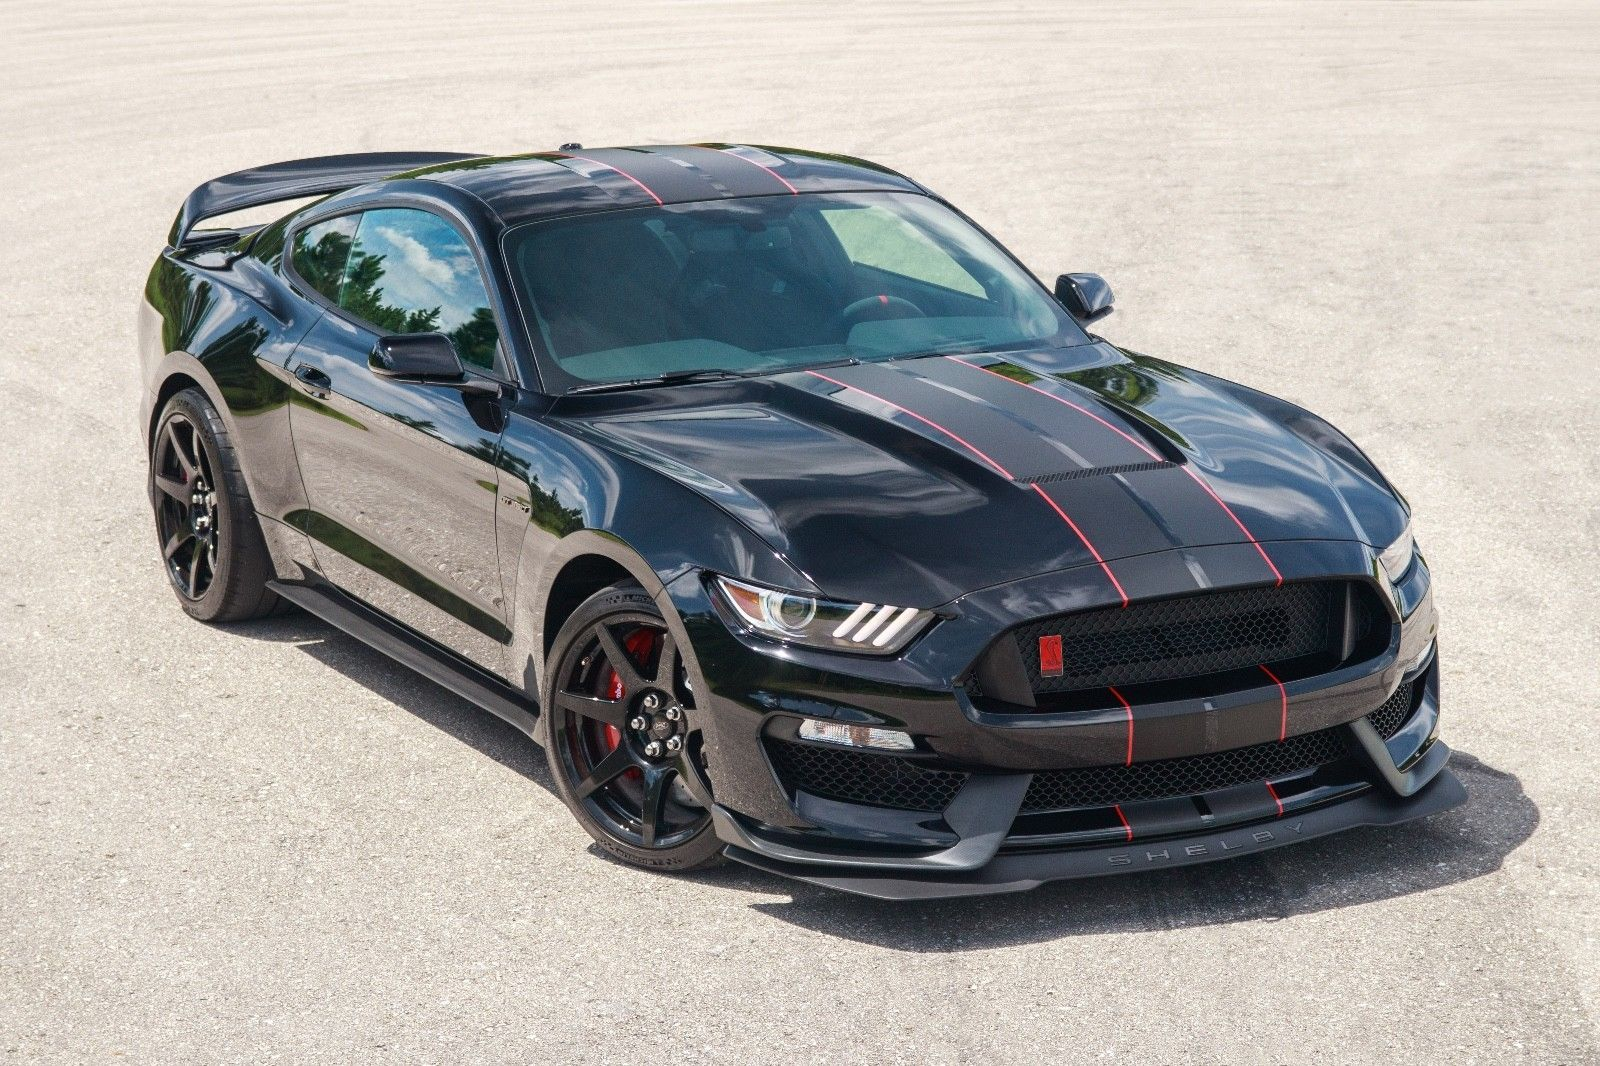 2018 Ford Mustang Shelby Gt350 R Very Rare R Electronics Package